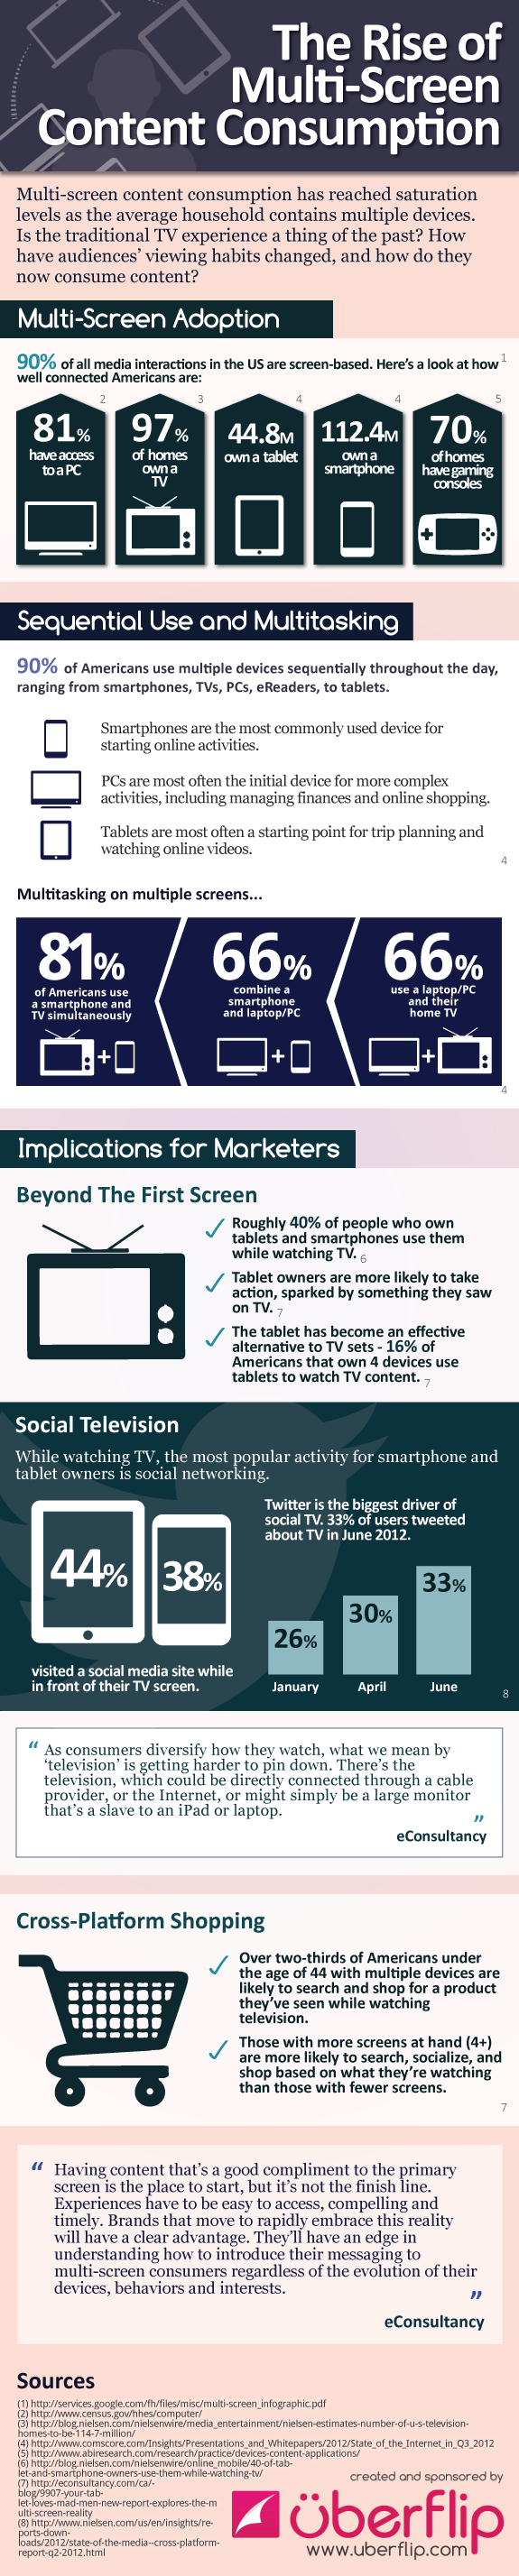 Uberflip multi-screen media consumption infographic